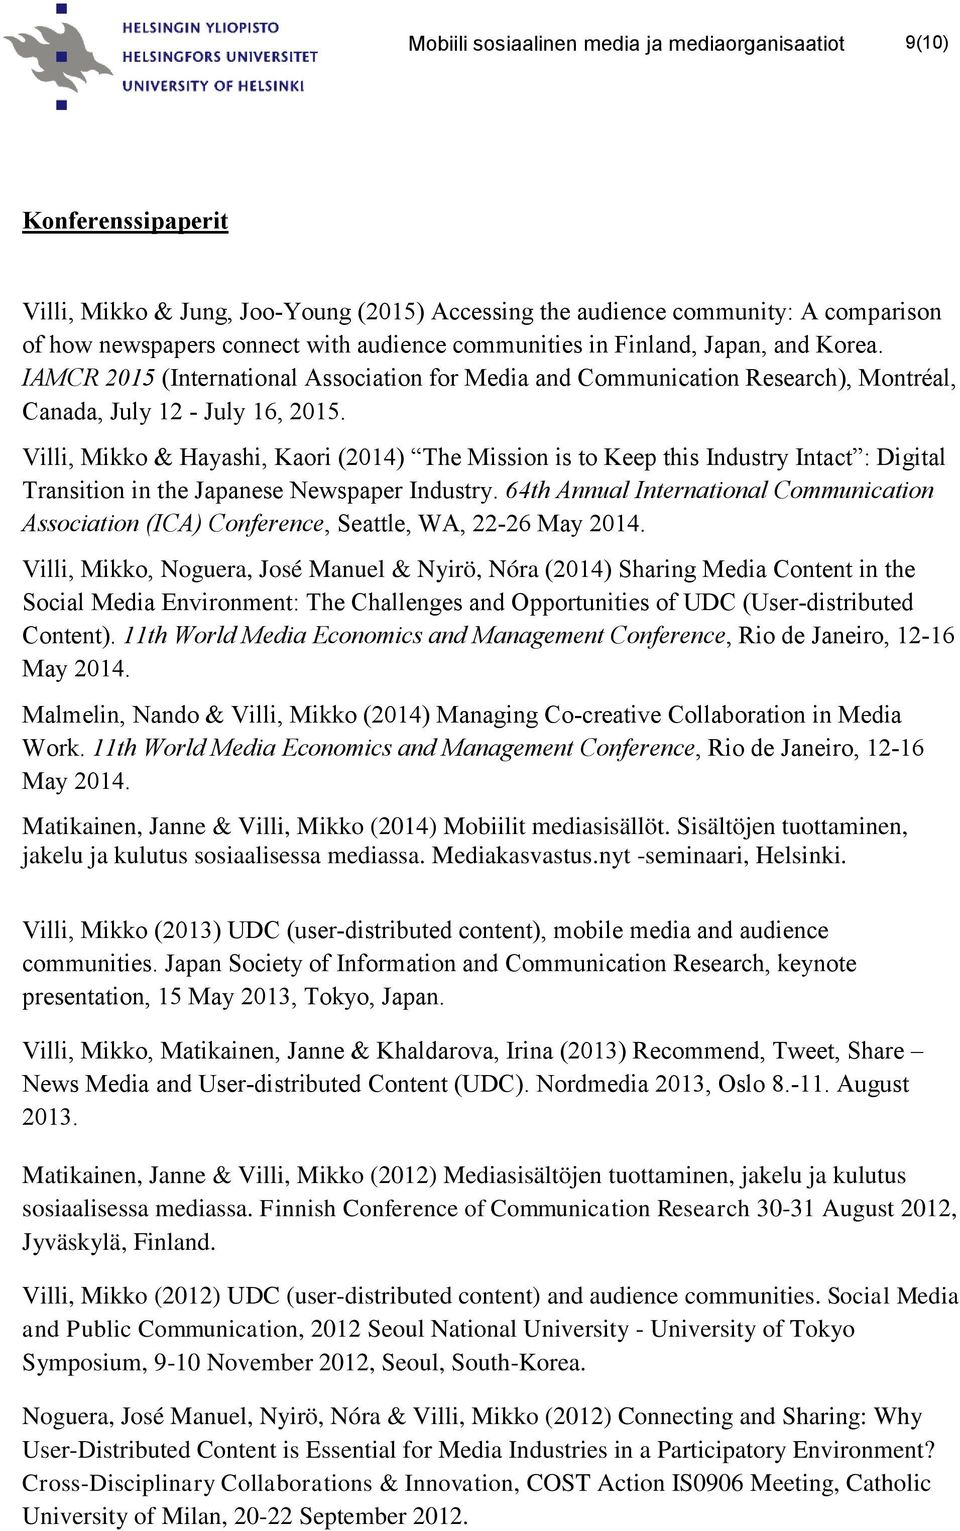 Villi, Mikko & Hayashi, Kaori (2014) The Mission is to Keep this Industry Intact : Digital Transition in the Japanese Newspaper Industry.